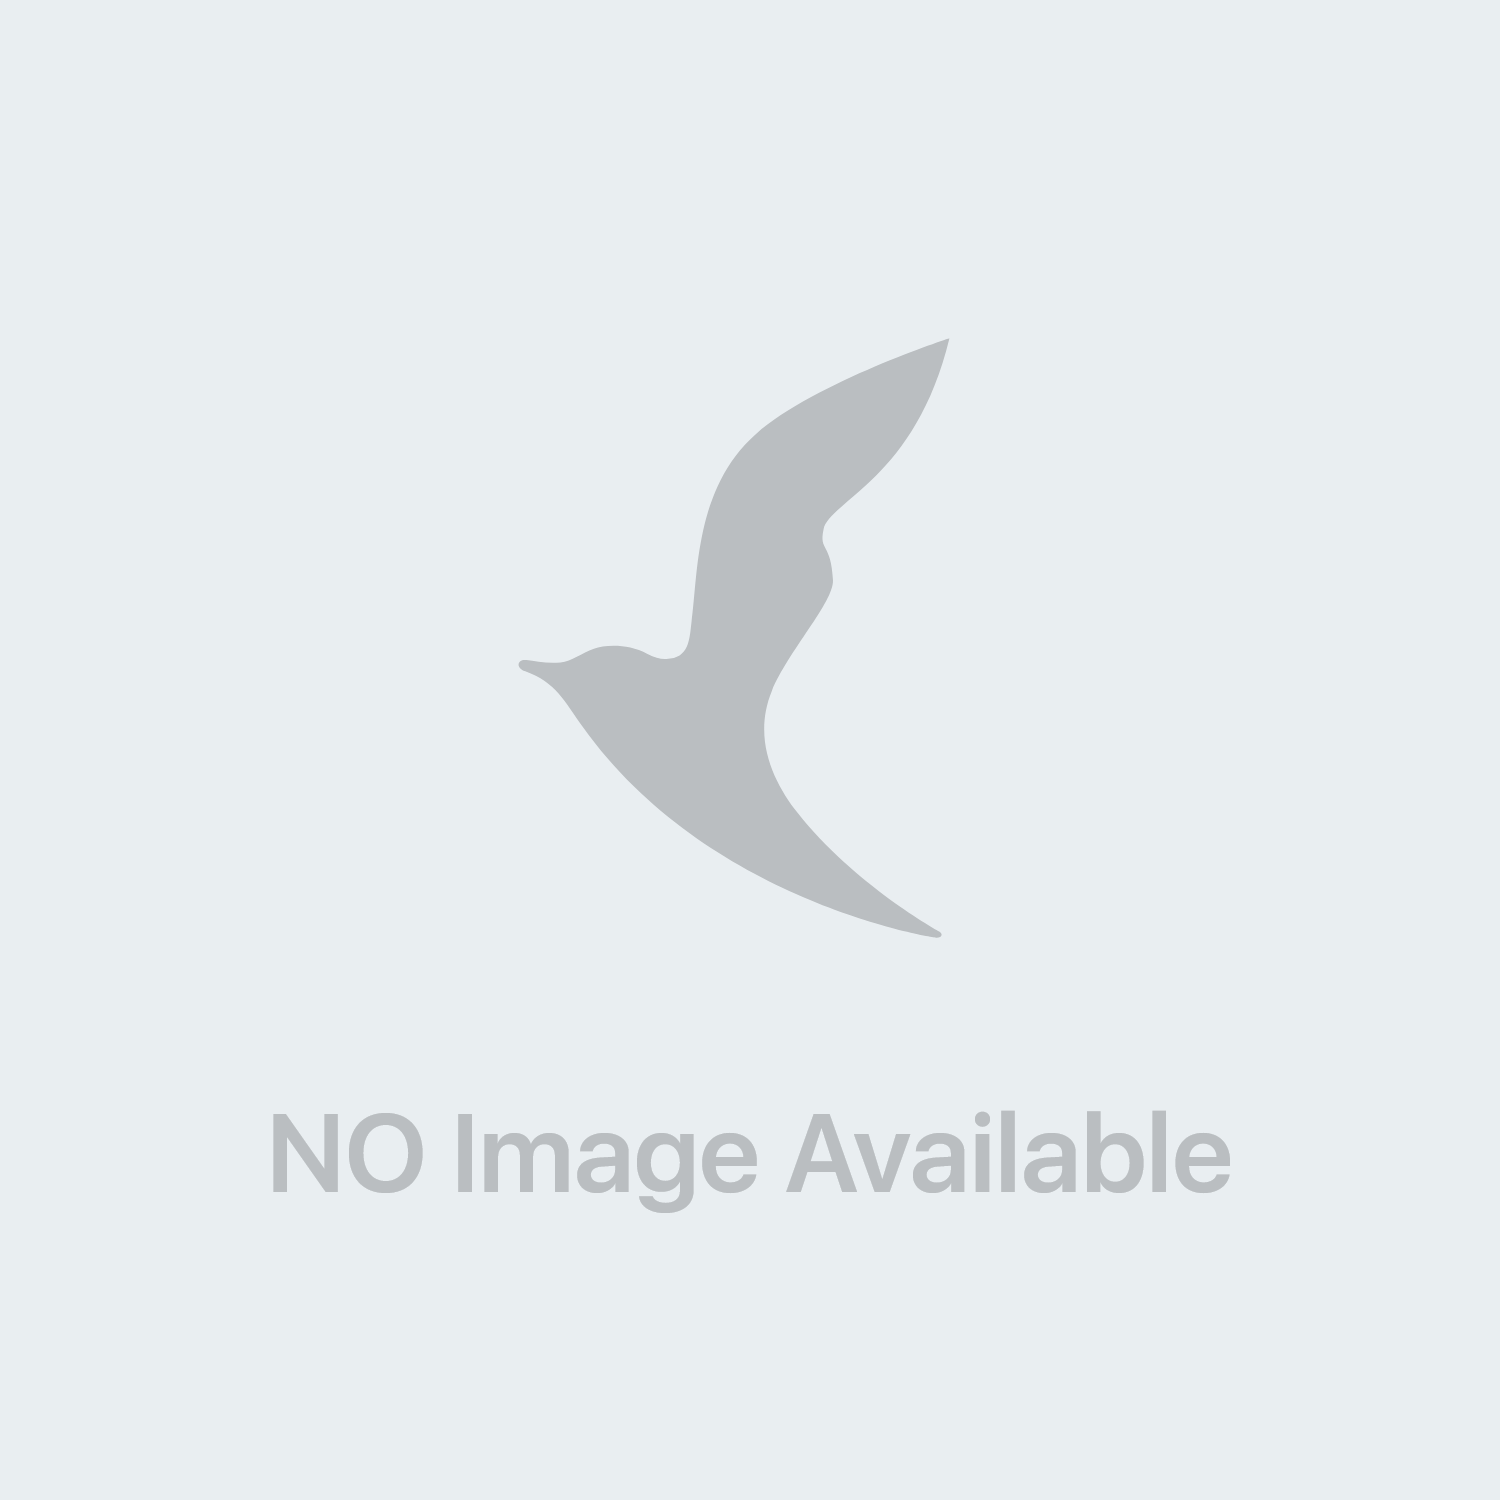 ENZYLIFE 60 Cps Natural Point